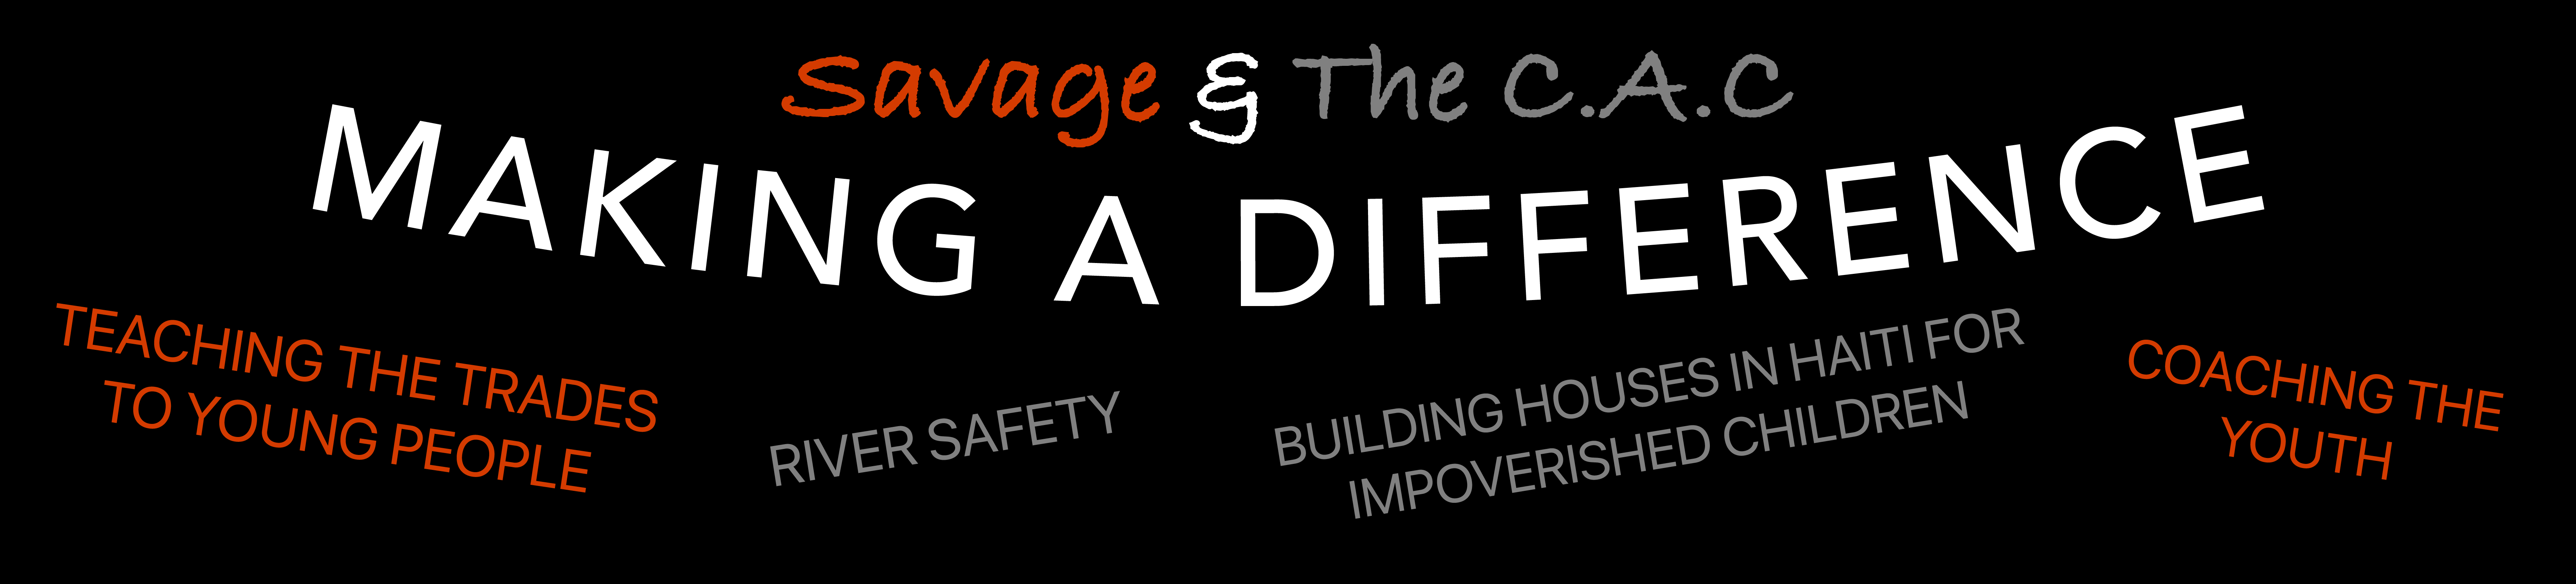 MAKING A DIFFERENCE website banner